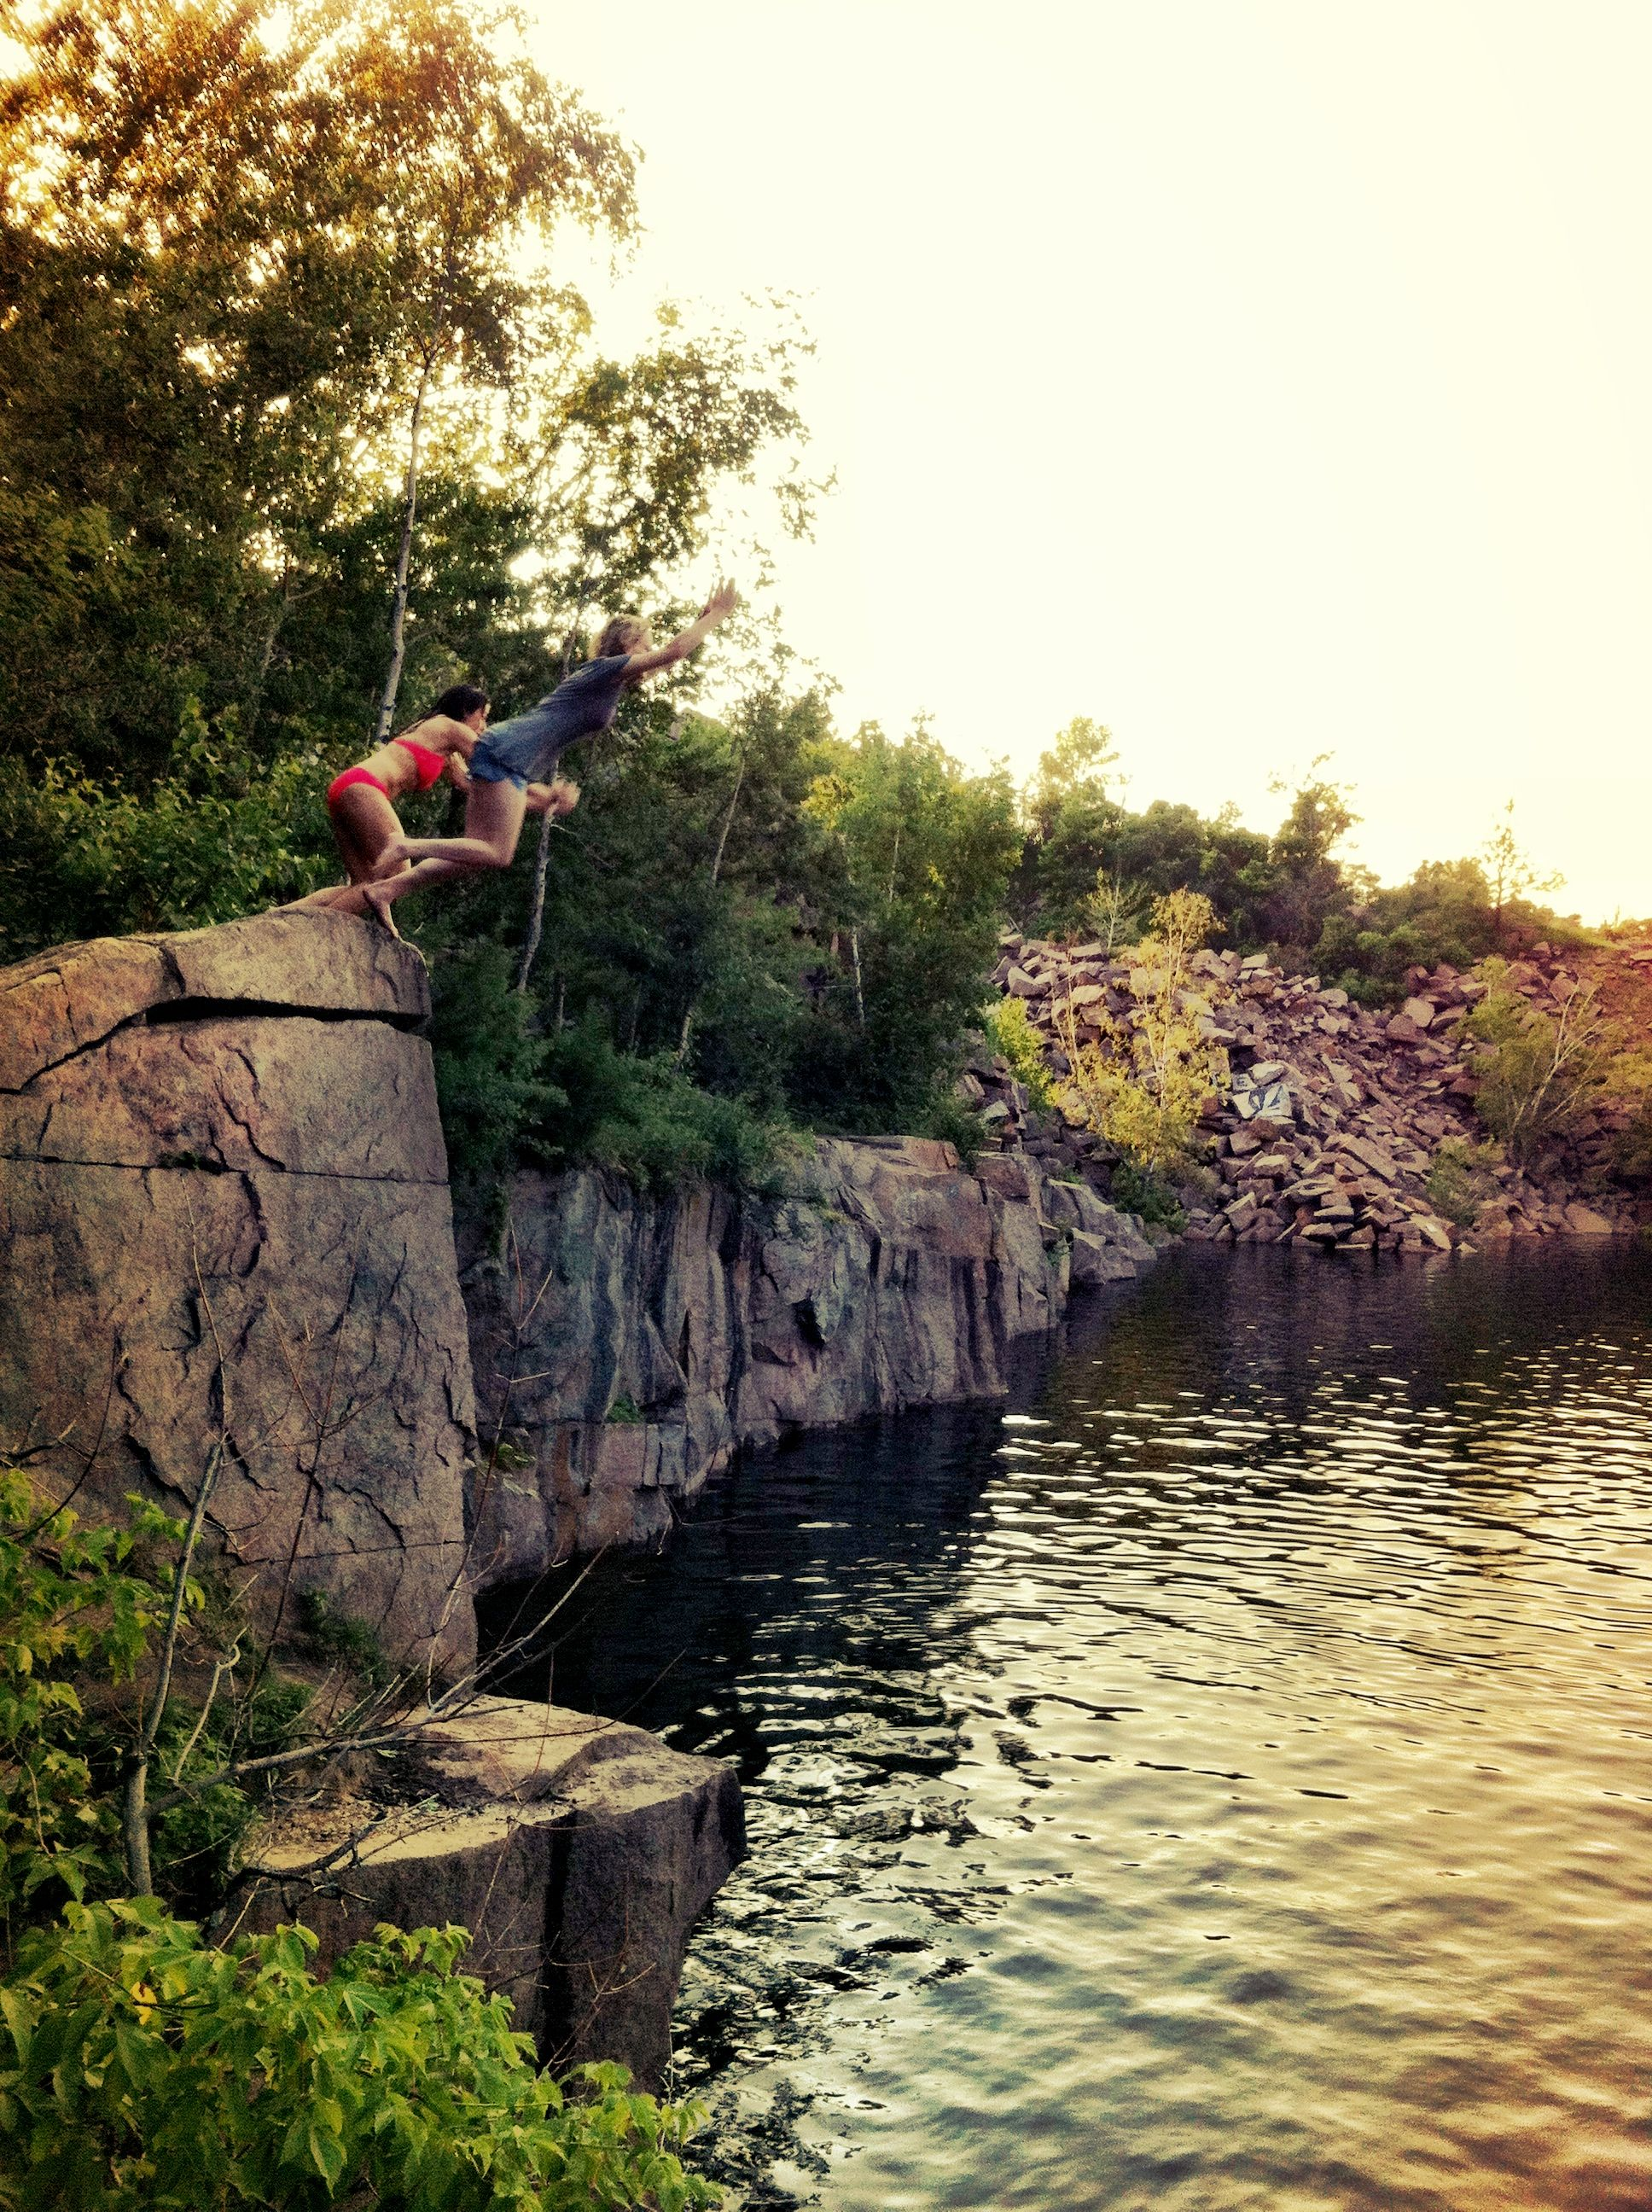 Cliff Jumping: Granite Quarry in St  Cloud, MN  Sun bathing on the